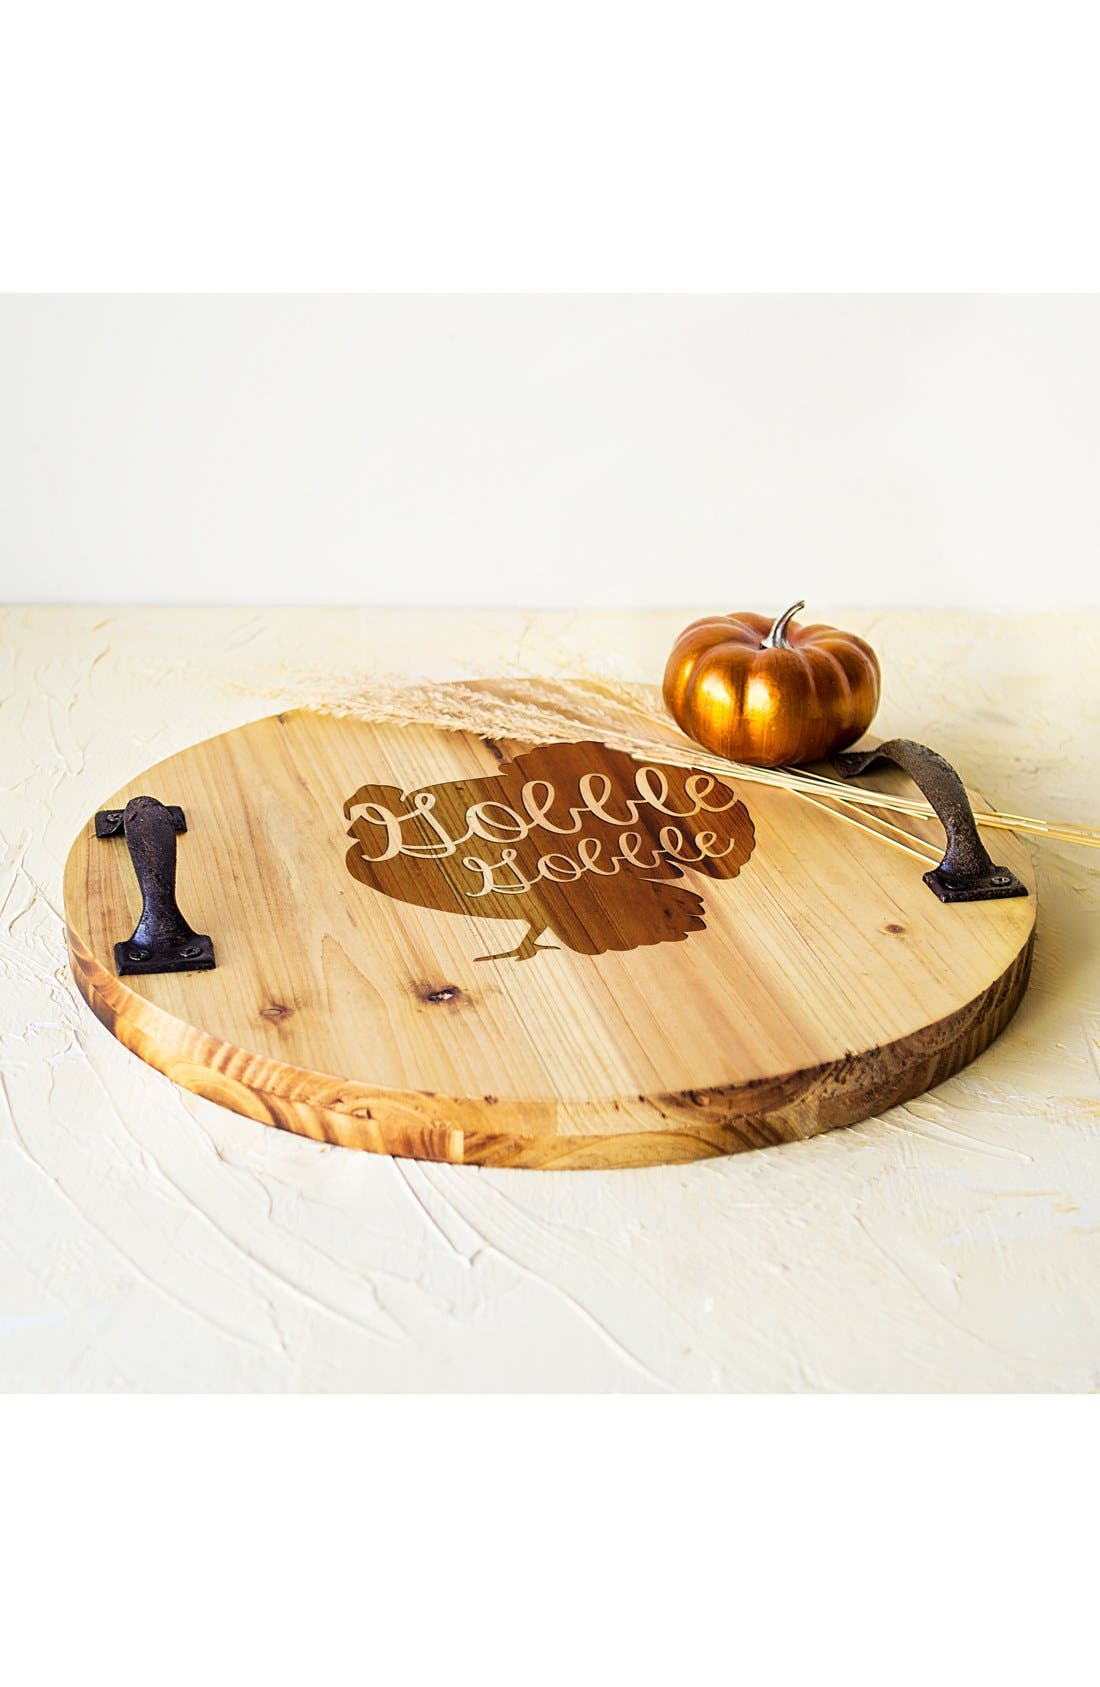 'Turkey' Rustic Wooden Tray,                             Alternate thumbnail 3, color,                             Brown